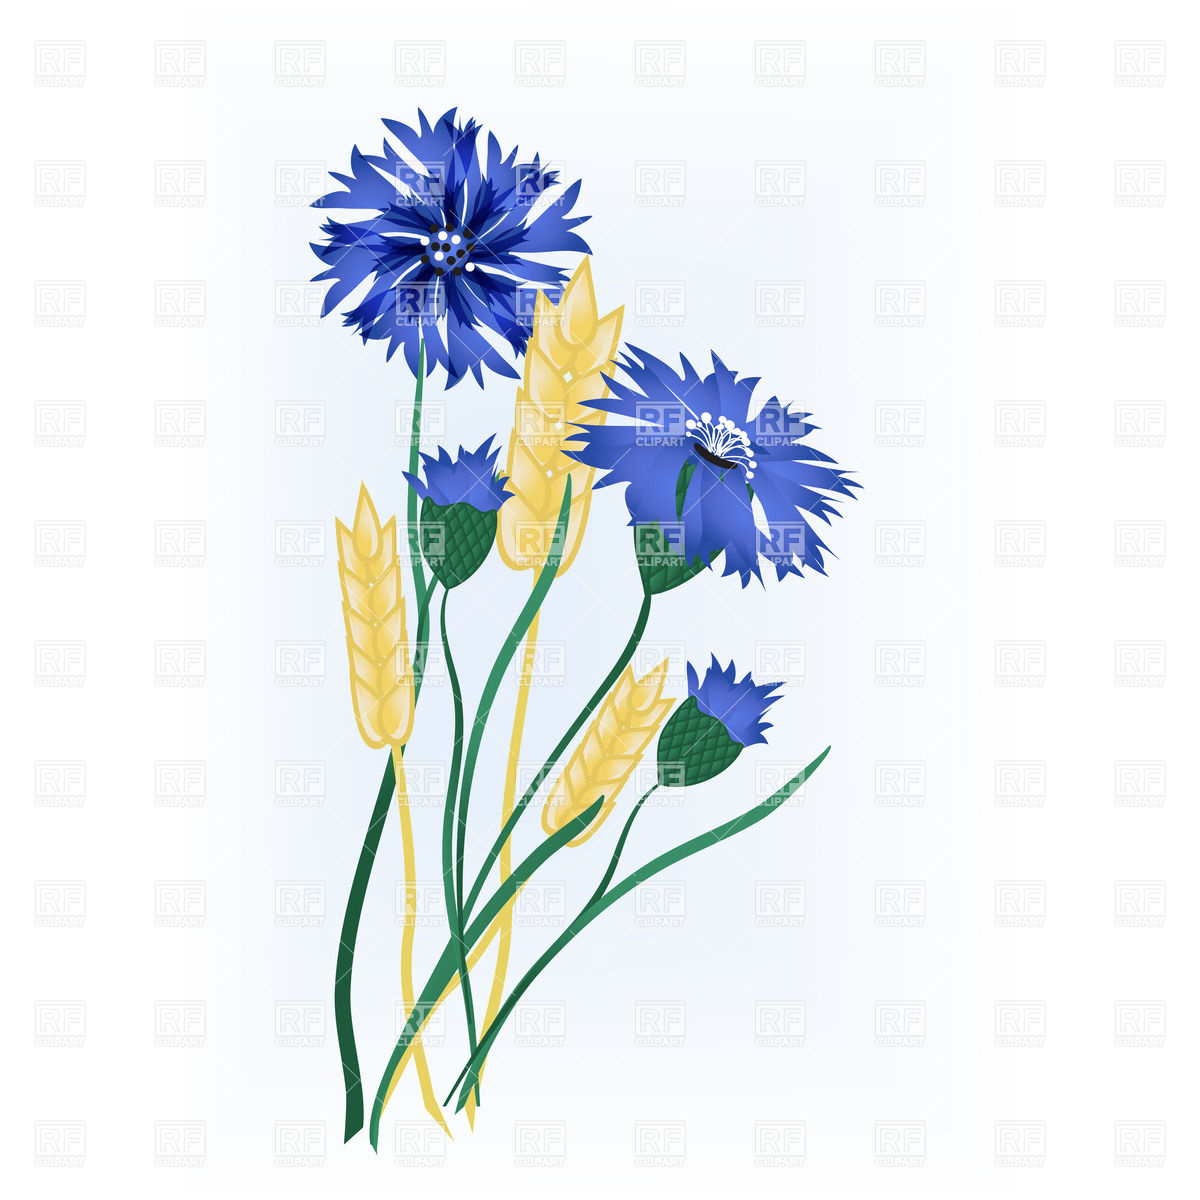 1200x1200 Wheat Ears Of Wheat And Blue Flowers Vector Image Vector Artwork